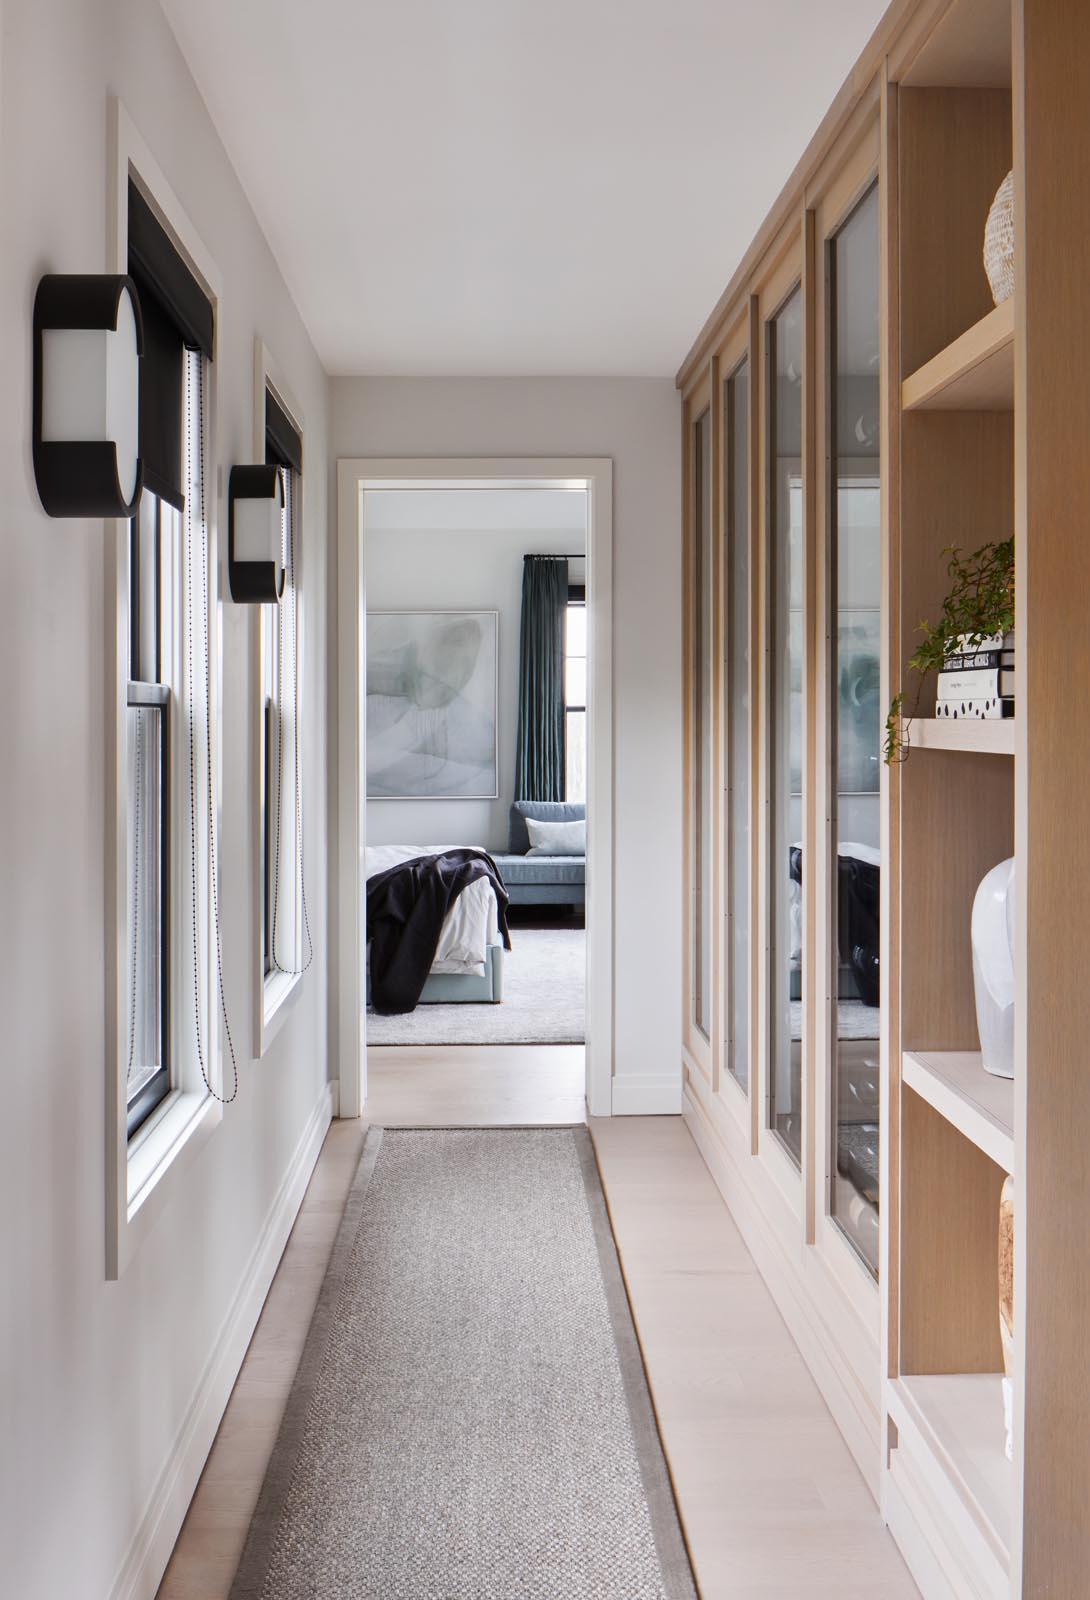 A hallway lined with wood shelving and cabinets leads to the master bedroom.